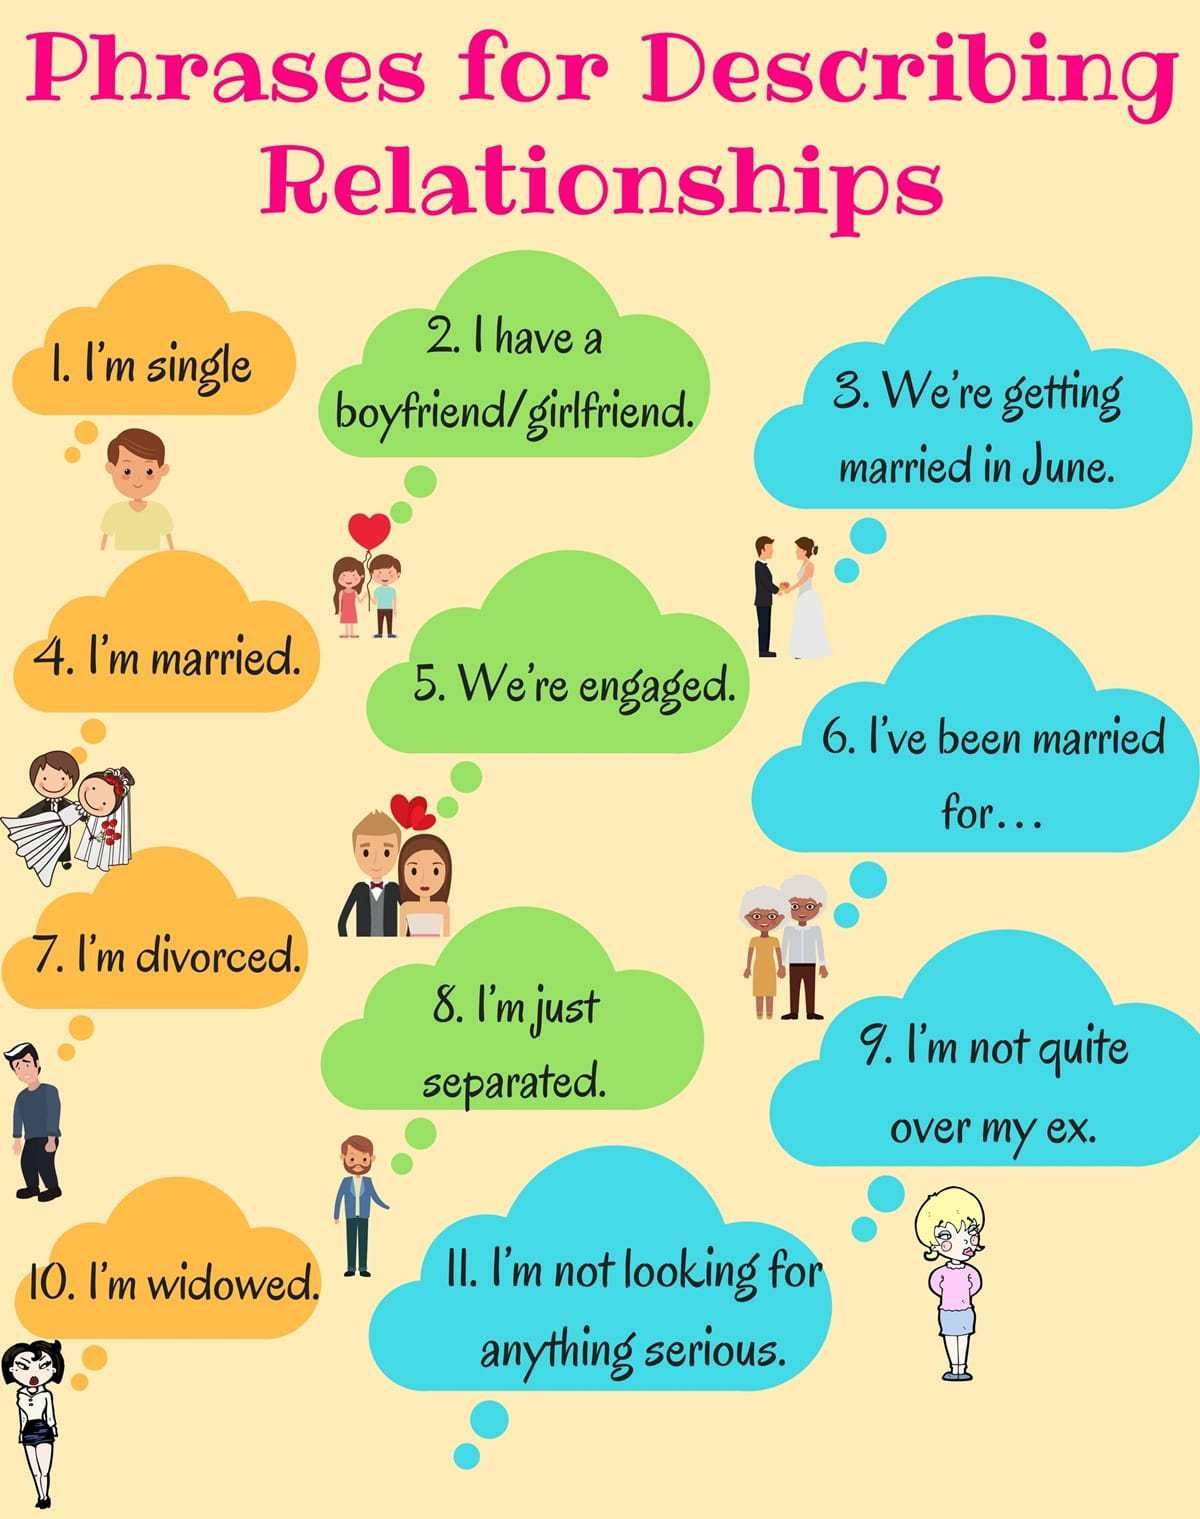 003 Useful Phrases for Describing Relationships in English